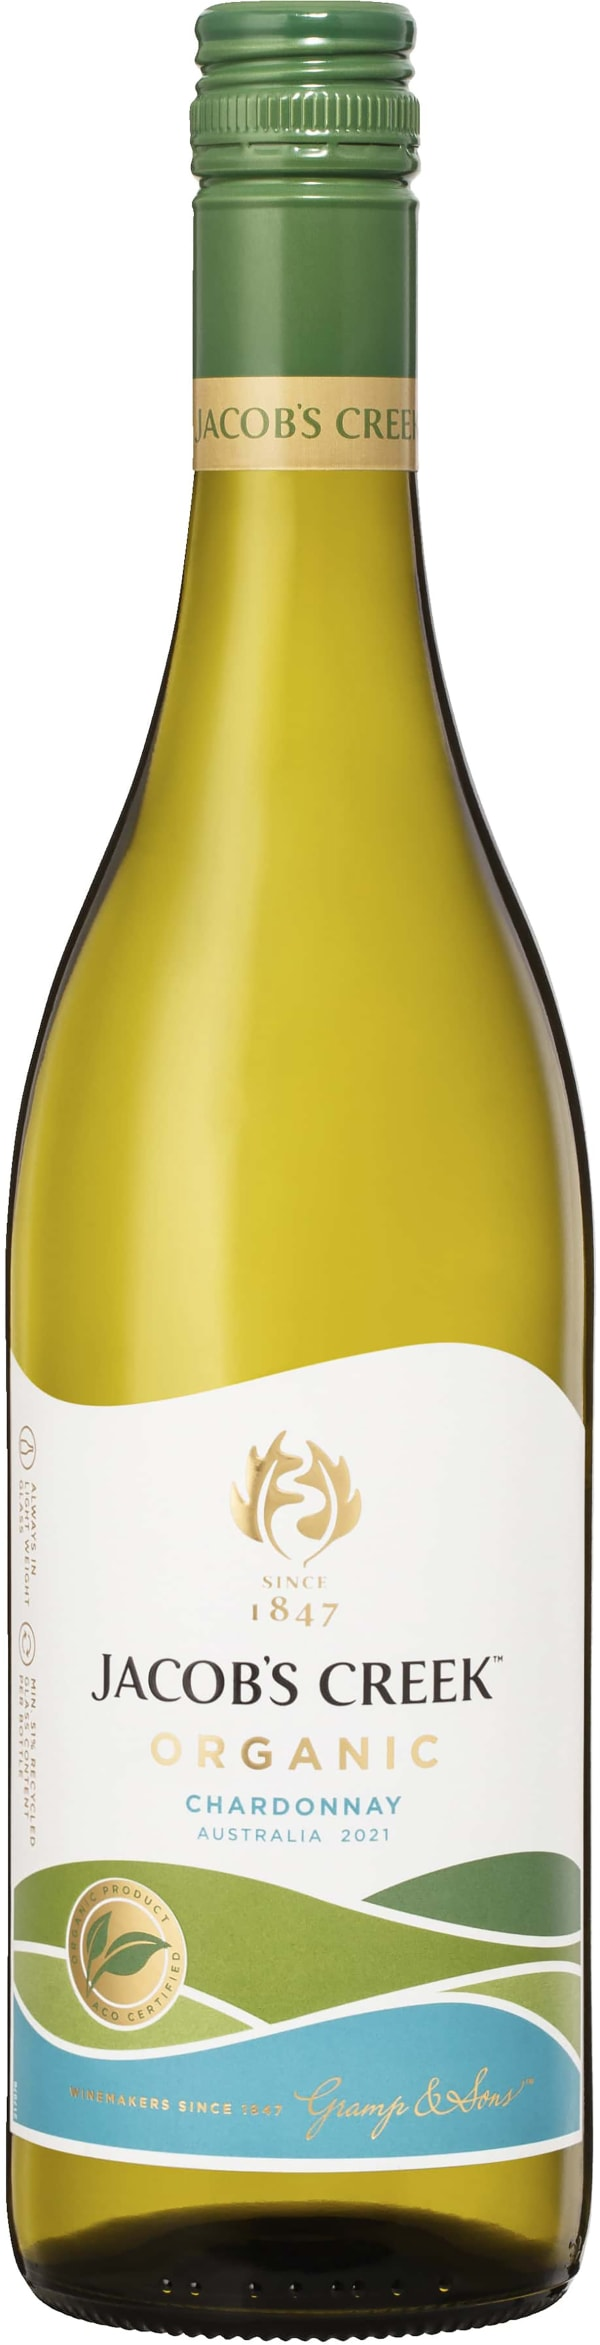 Jacob's Creek Organic Chardonnay 2016